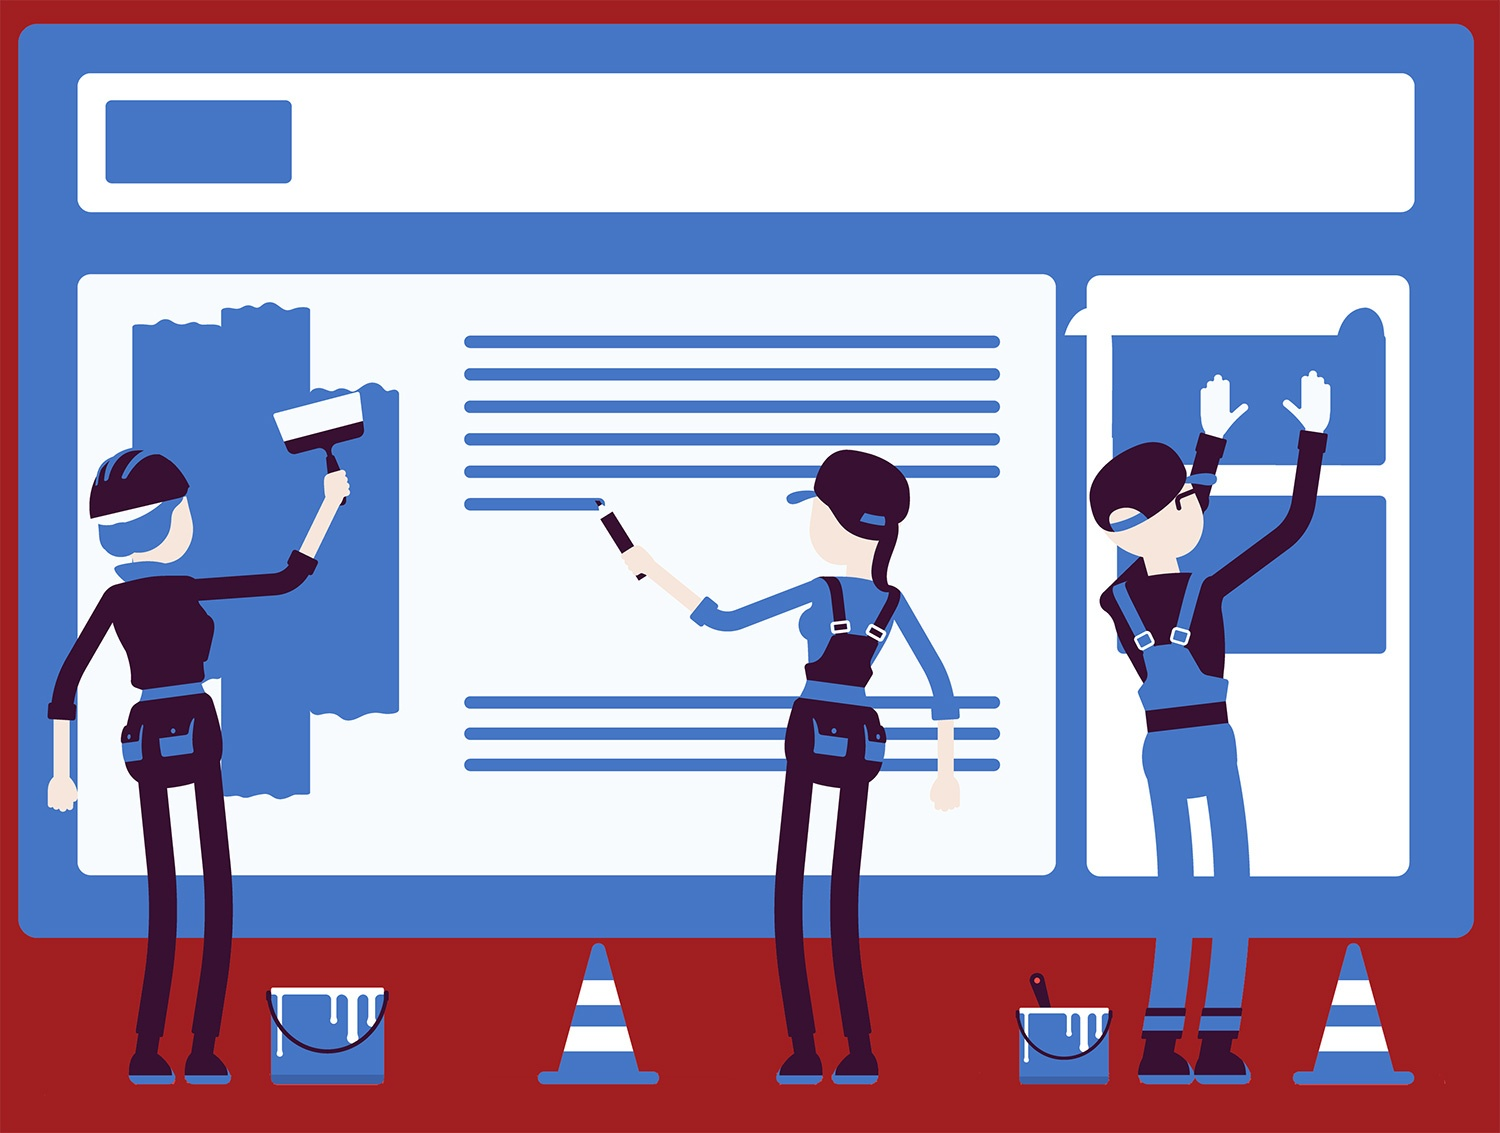 Illustration of workers building a webpage